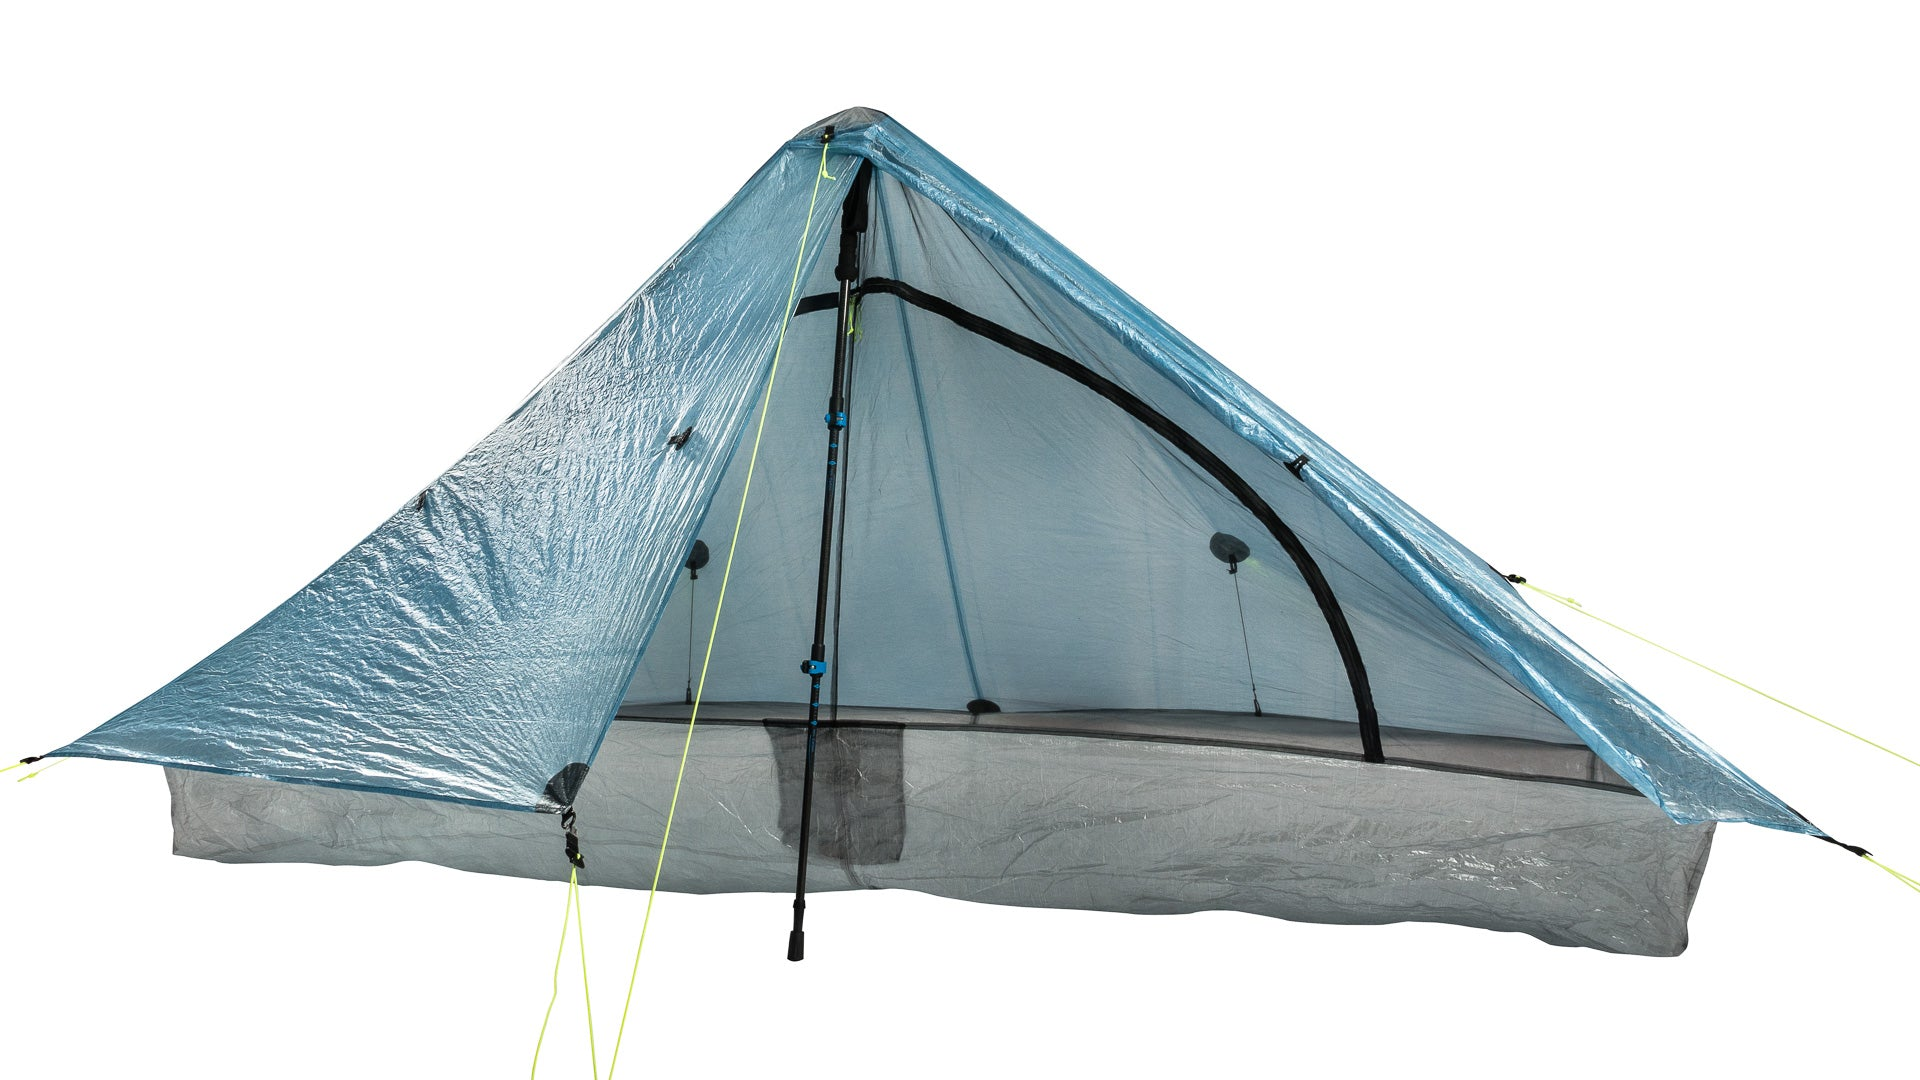 Details about  /Azarxis 2 Person 4 Season Backpacking Tent Easy Set Up Waterproof Light Camping